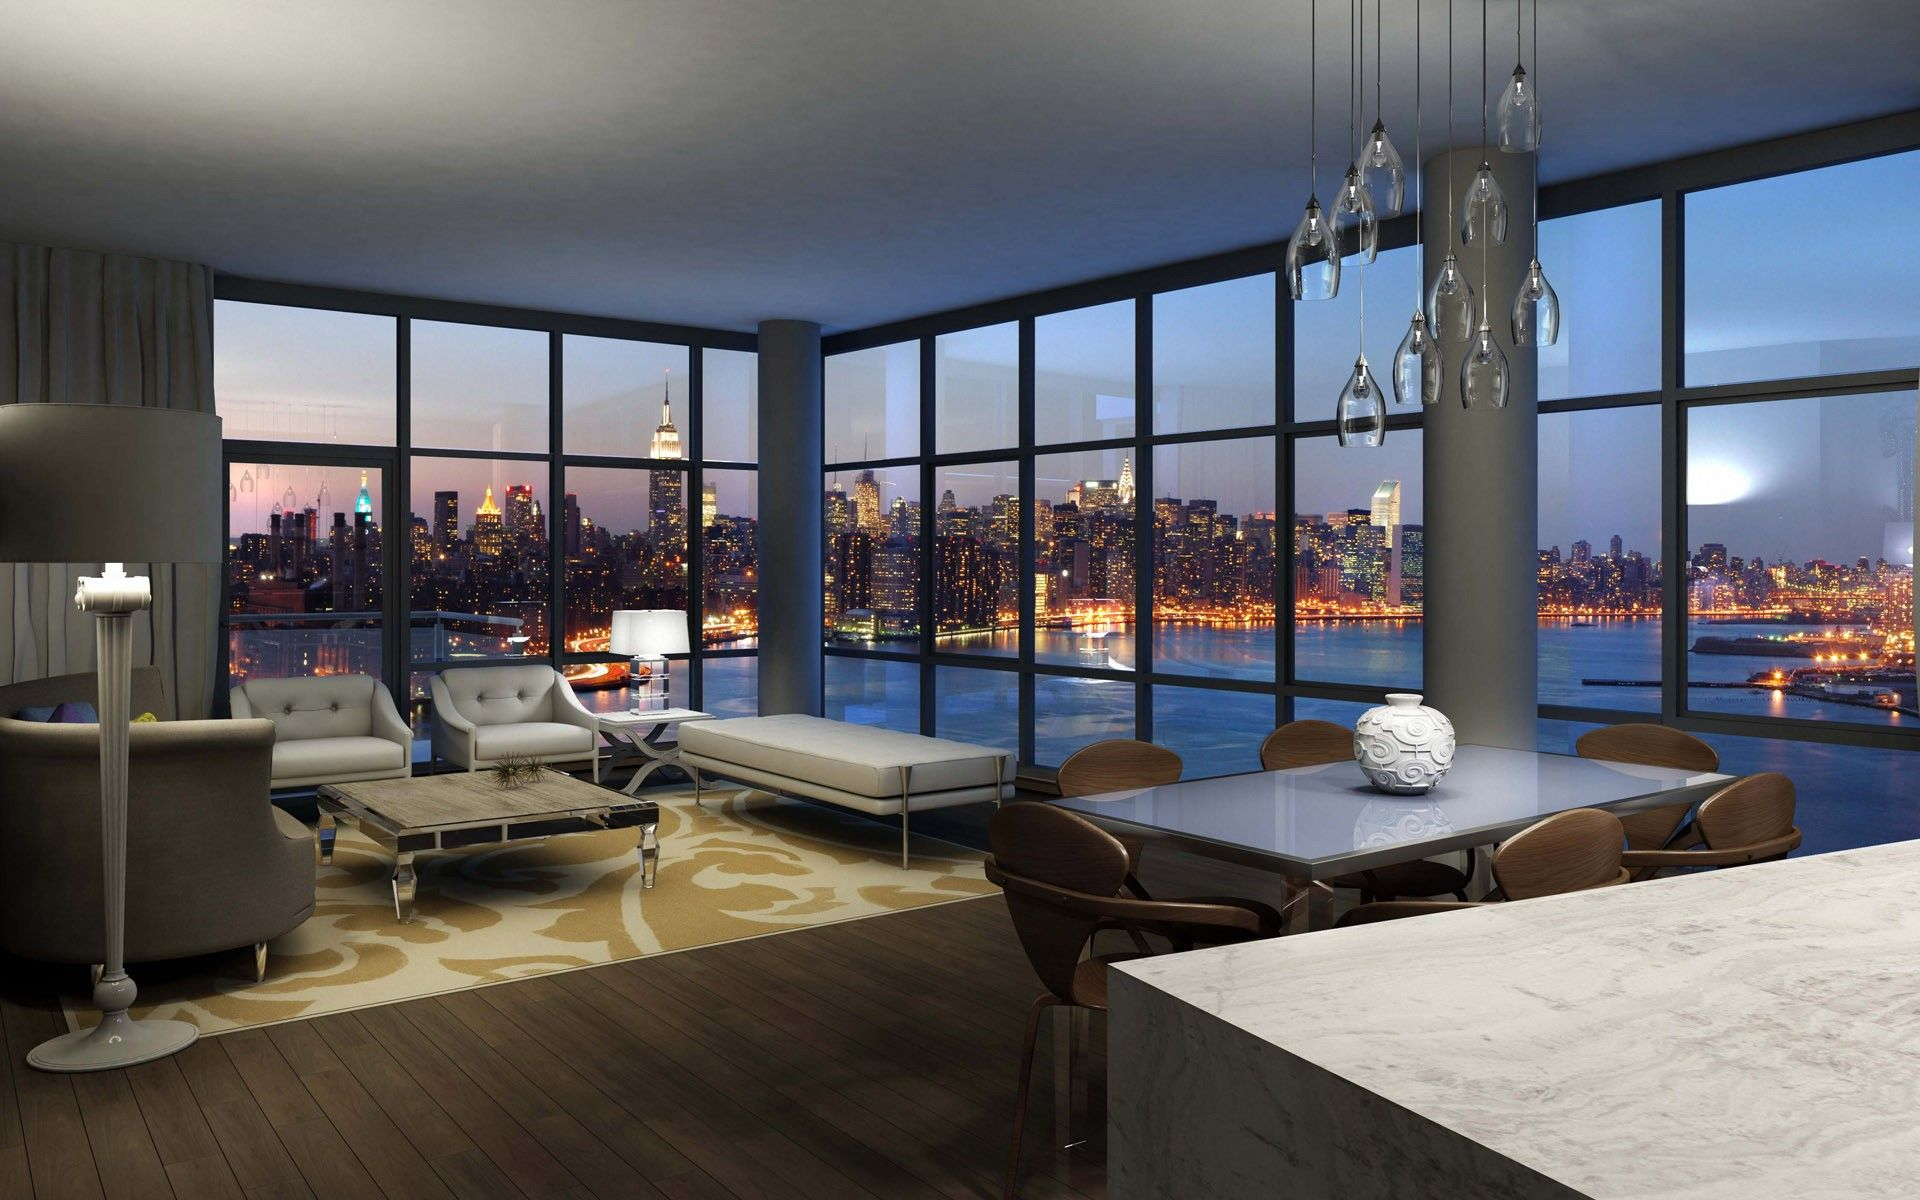 interior-design-apartment-with-city-view-desktop-wallpaper